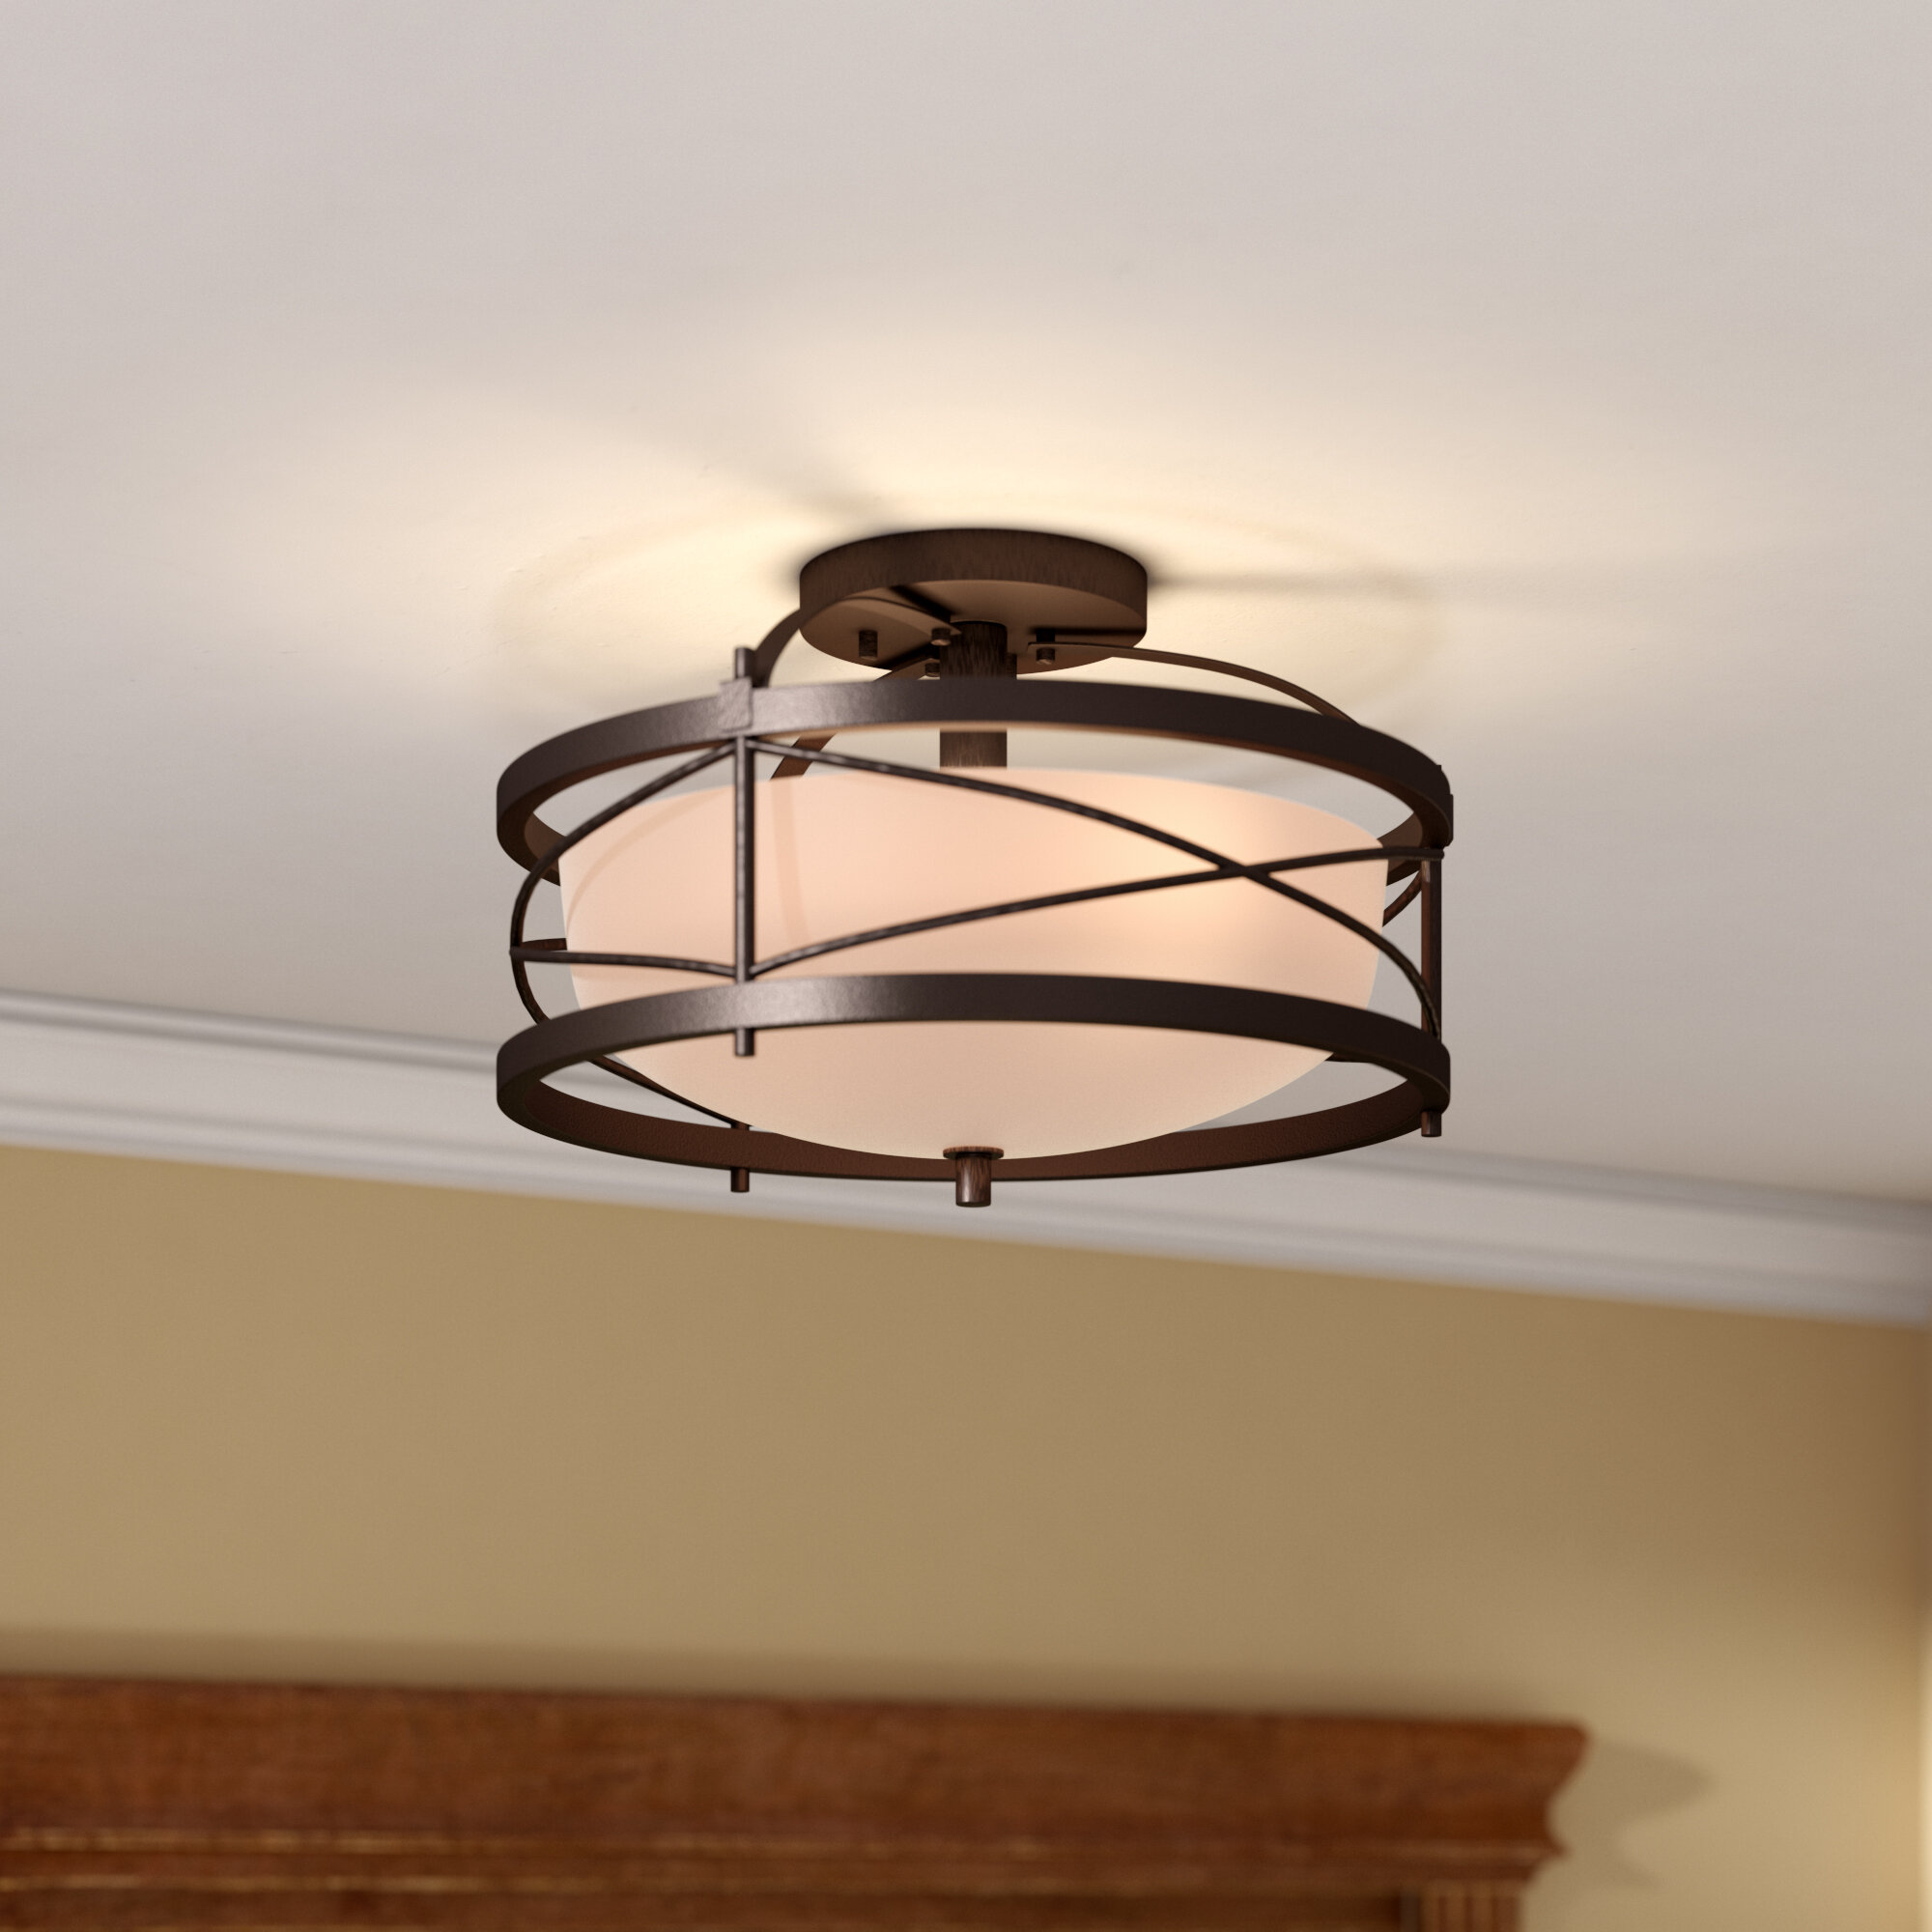 Inside Light Fixtures